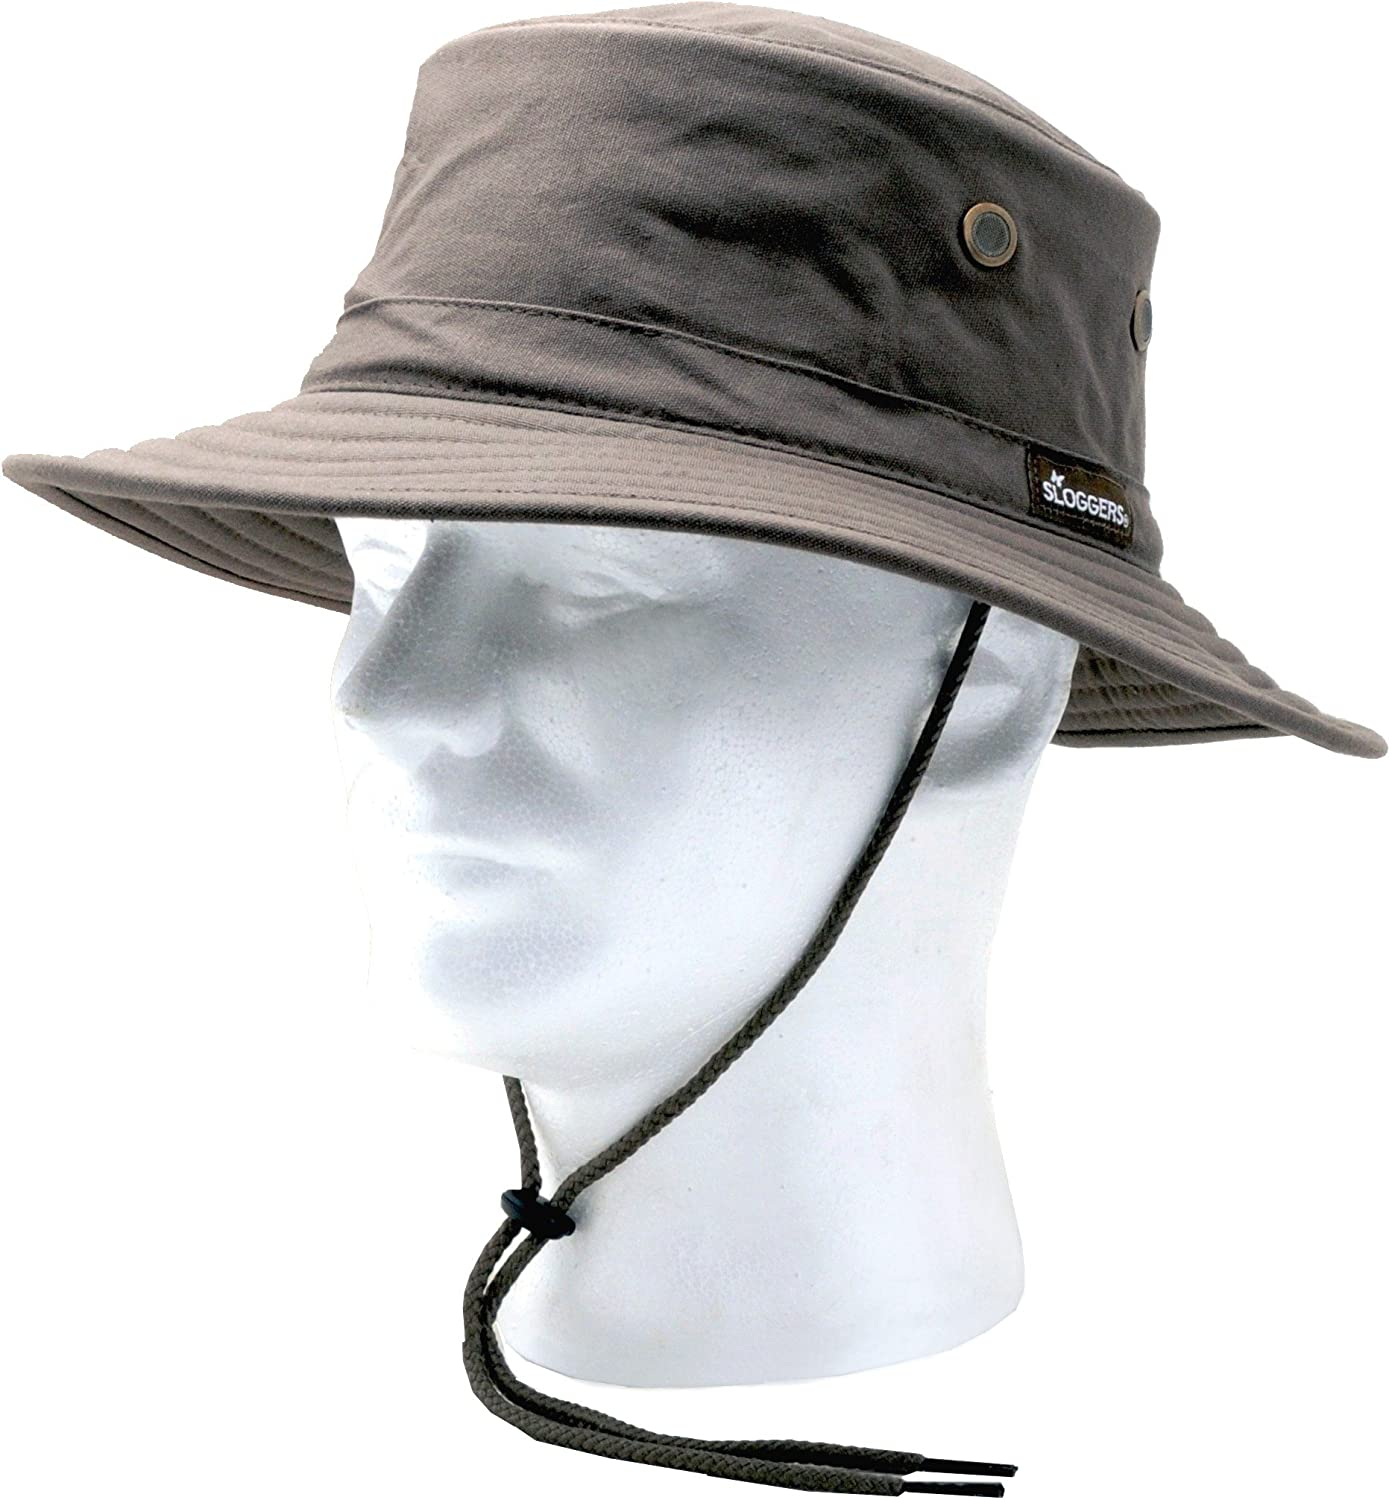 Sloggers Classic Cotton Hat with Wind Lanyard, Dark Brown, UPF 50+ Maximum Sun Protection, Style 4471DB,Adjustable Medium to Large